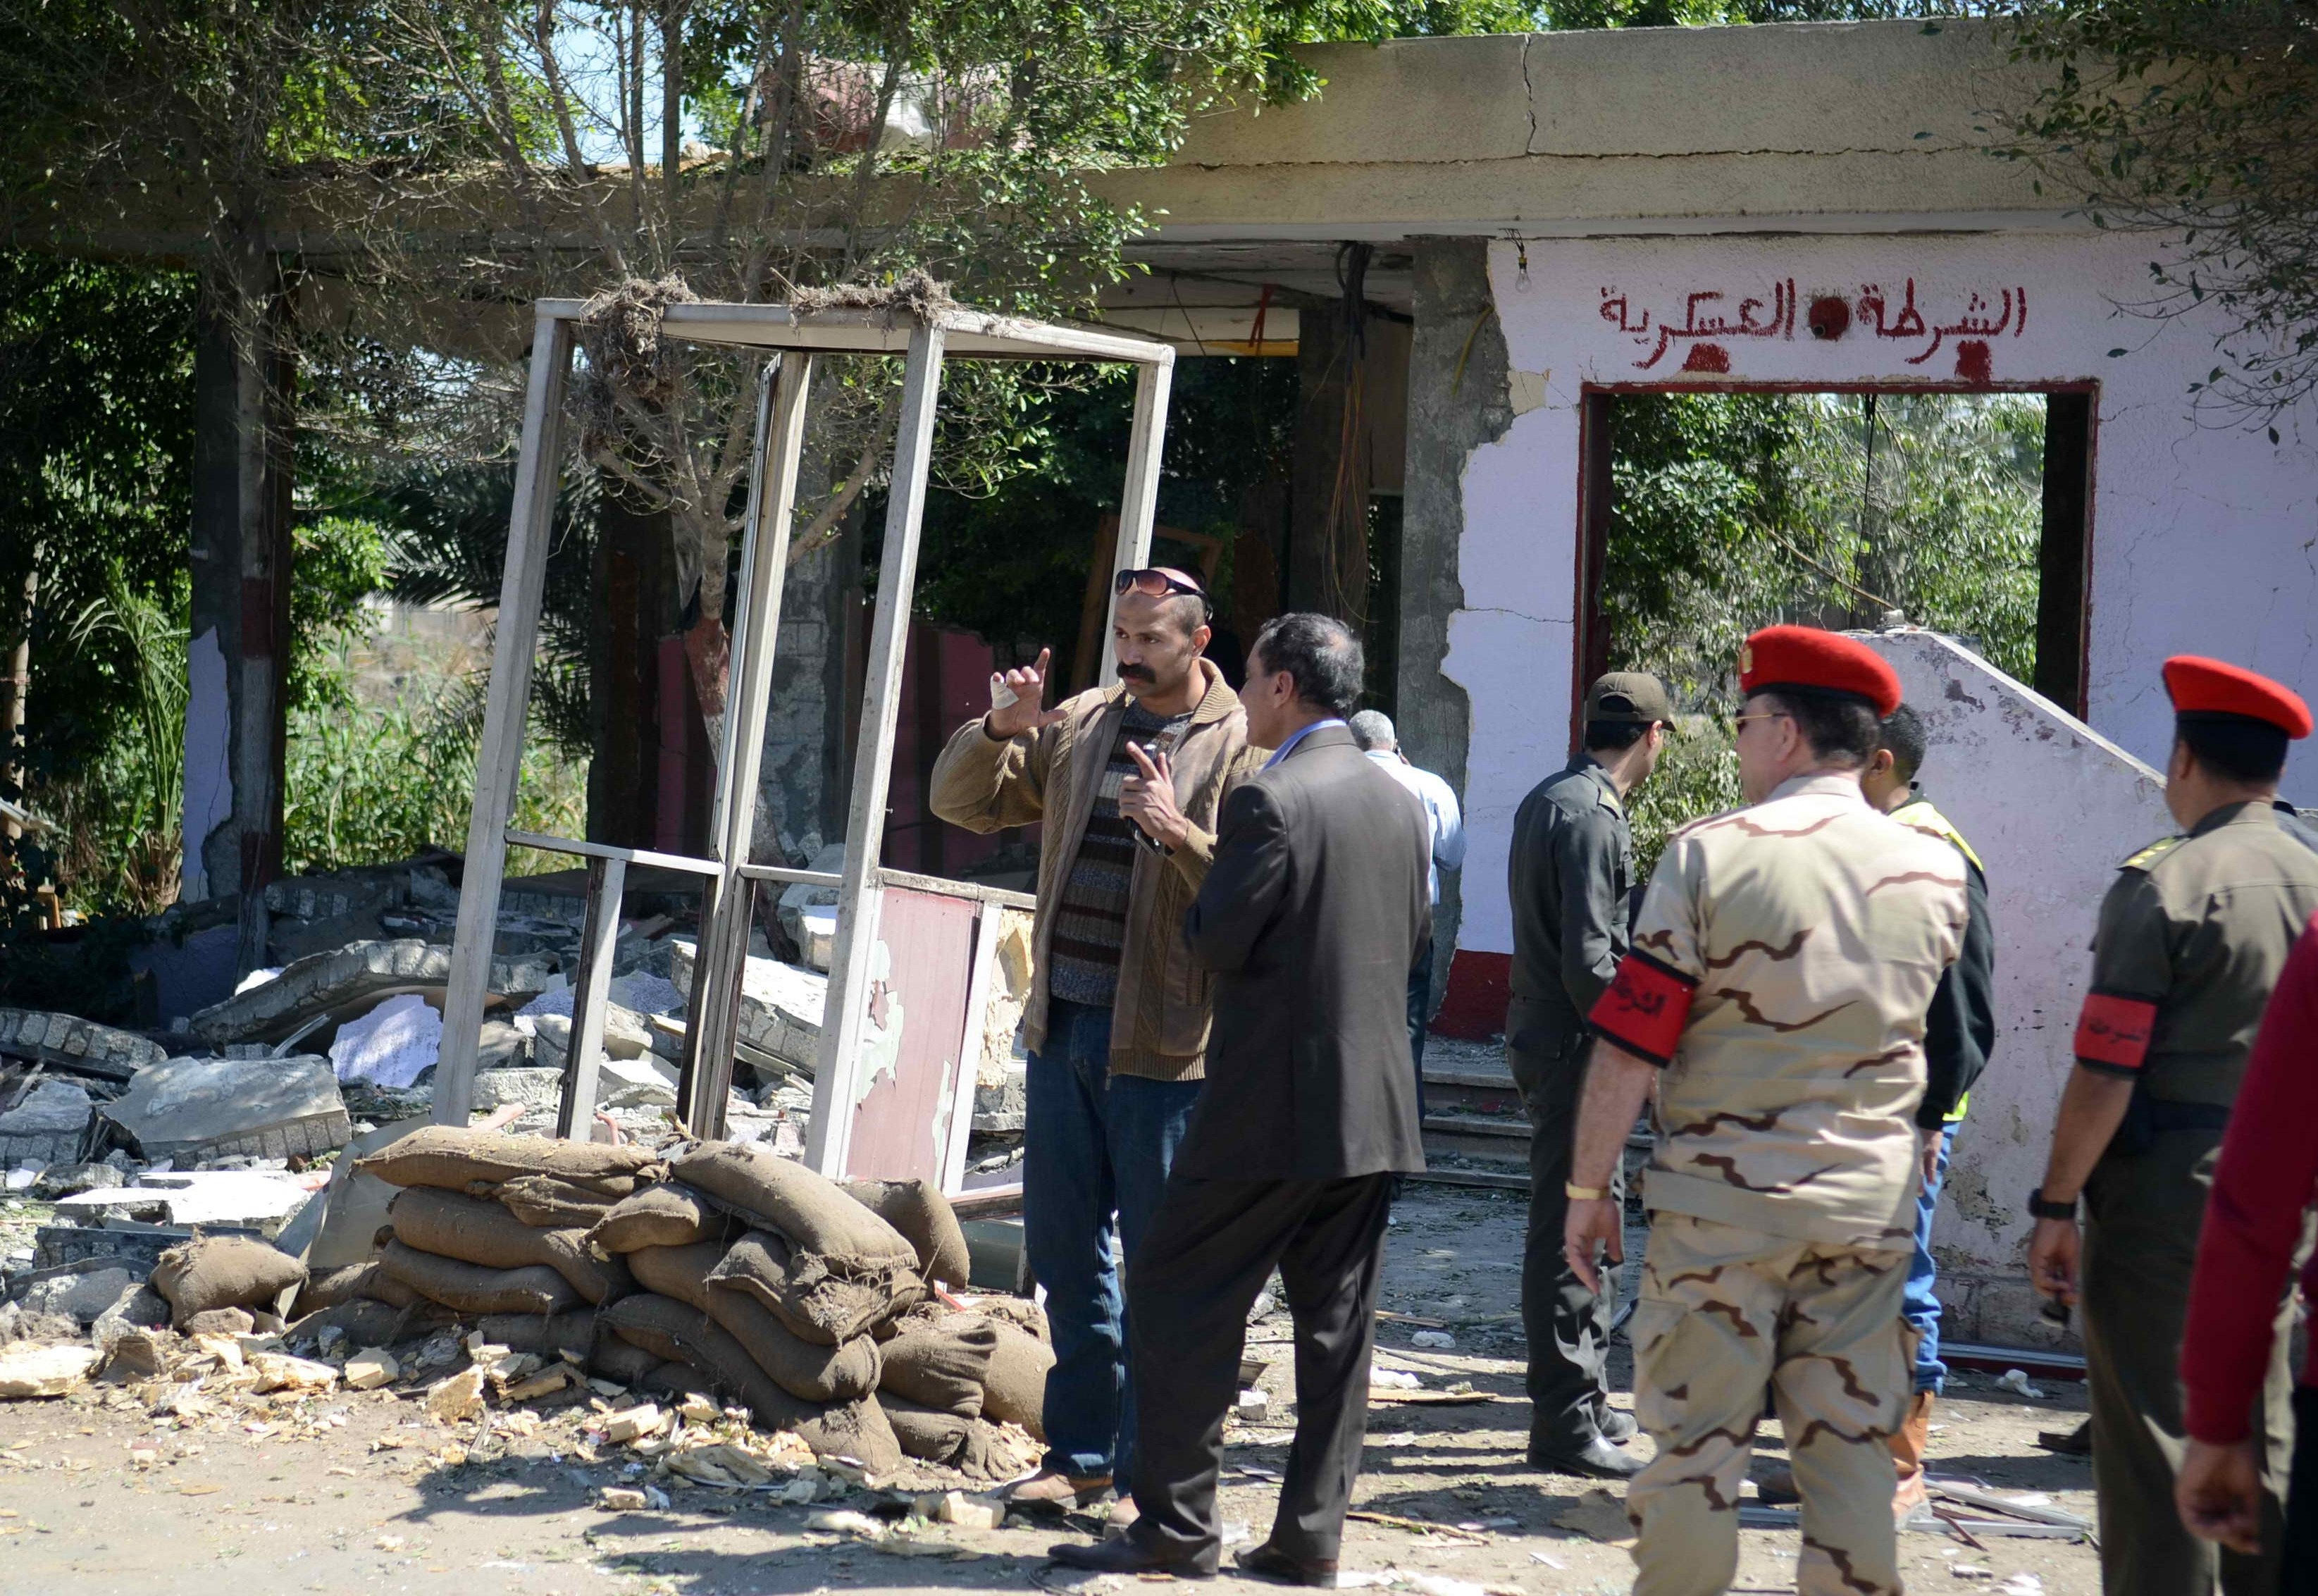 Egyptian soldiers and officials inspect the sight where gunmen killed six soldiers at a Cairo checkpoint on March 15, 2014  in an attack the military blamed on the Muslim Brotherhood movement of deposed president Mohamed Morsi. The attack came two days after gunmen killed a soldier in Cairo, as militants once based in the Sinai Peninsula increasingly target the capital in a campaign that has killed more than 200 security men since the army overthrew Morsi last July.  (AFP PHOTO / AHMED GAMEL)